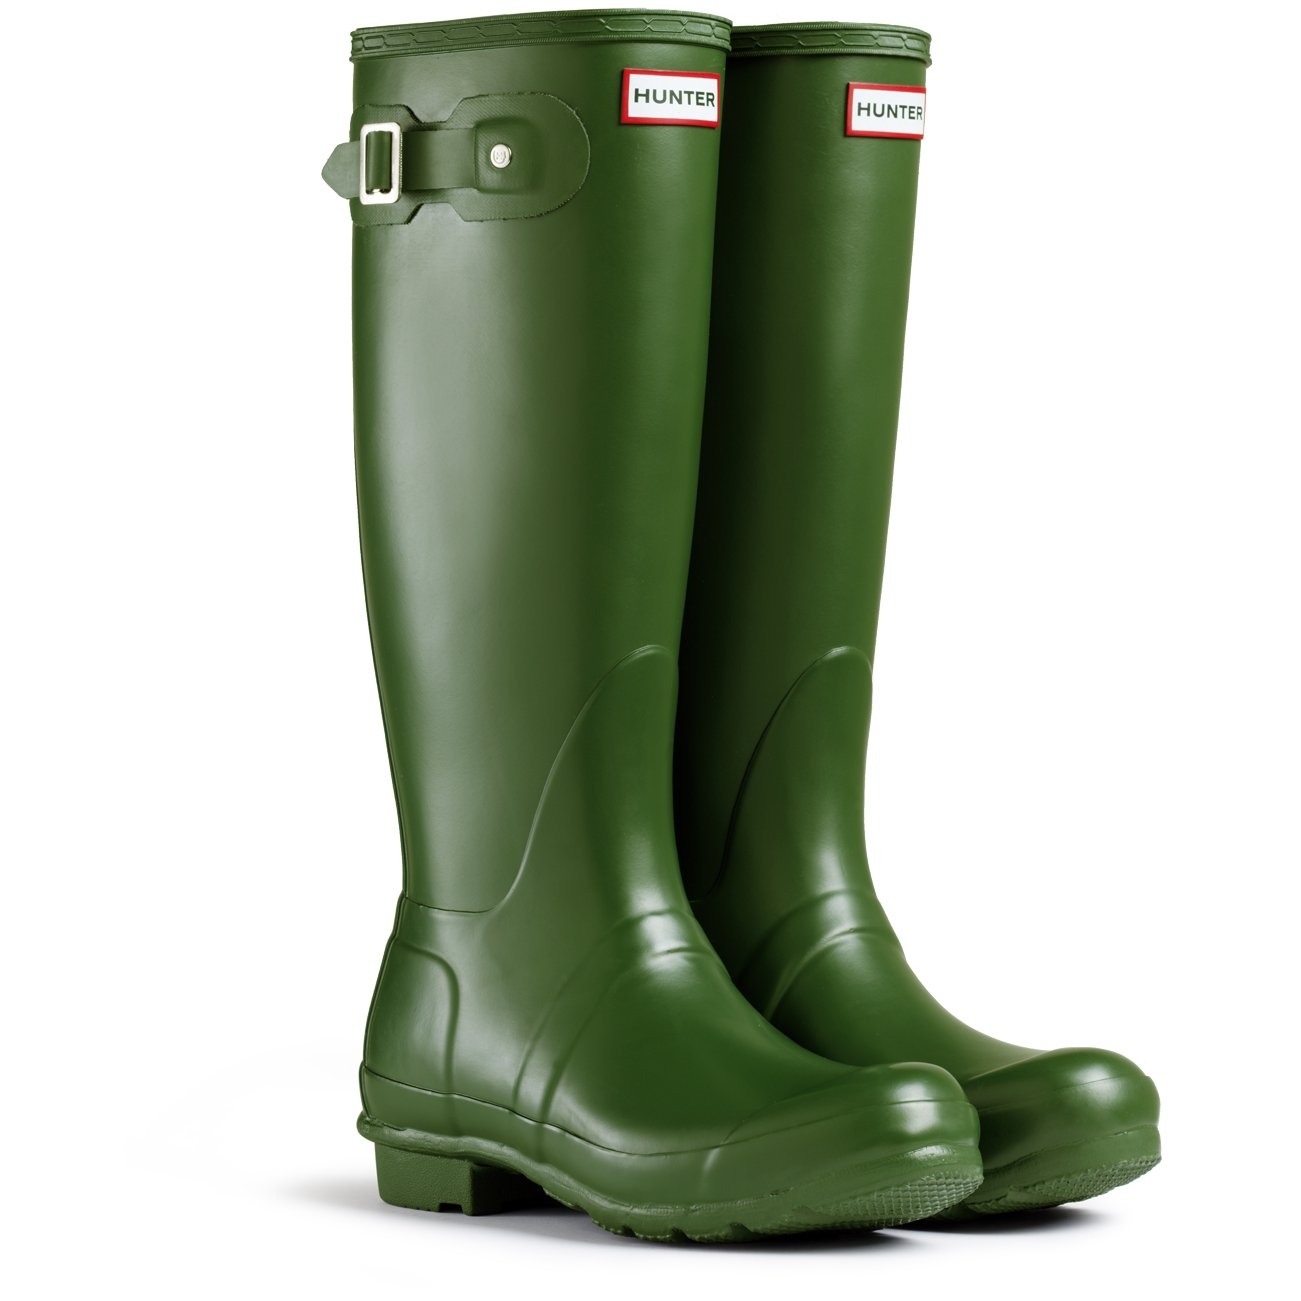 Hunter Women's Original Tall Snow Boot (7 M US, Hunter/Green)